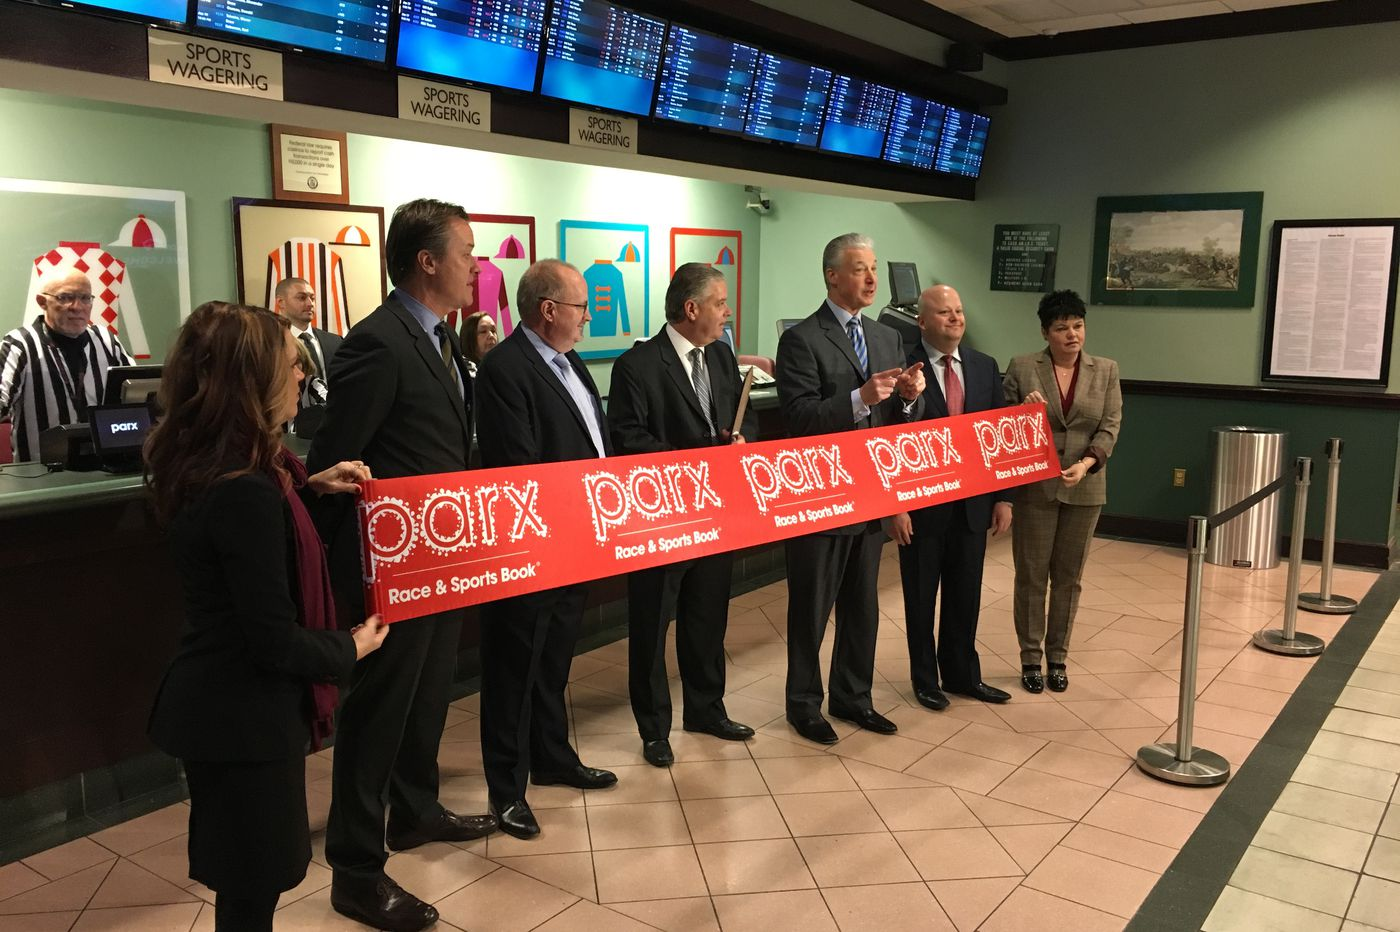 Parx Casino wants to open a satellite sportsbook at the Valley Forge Turf Club